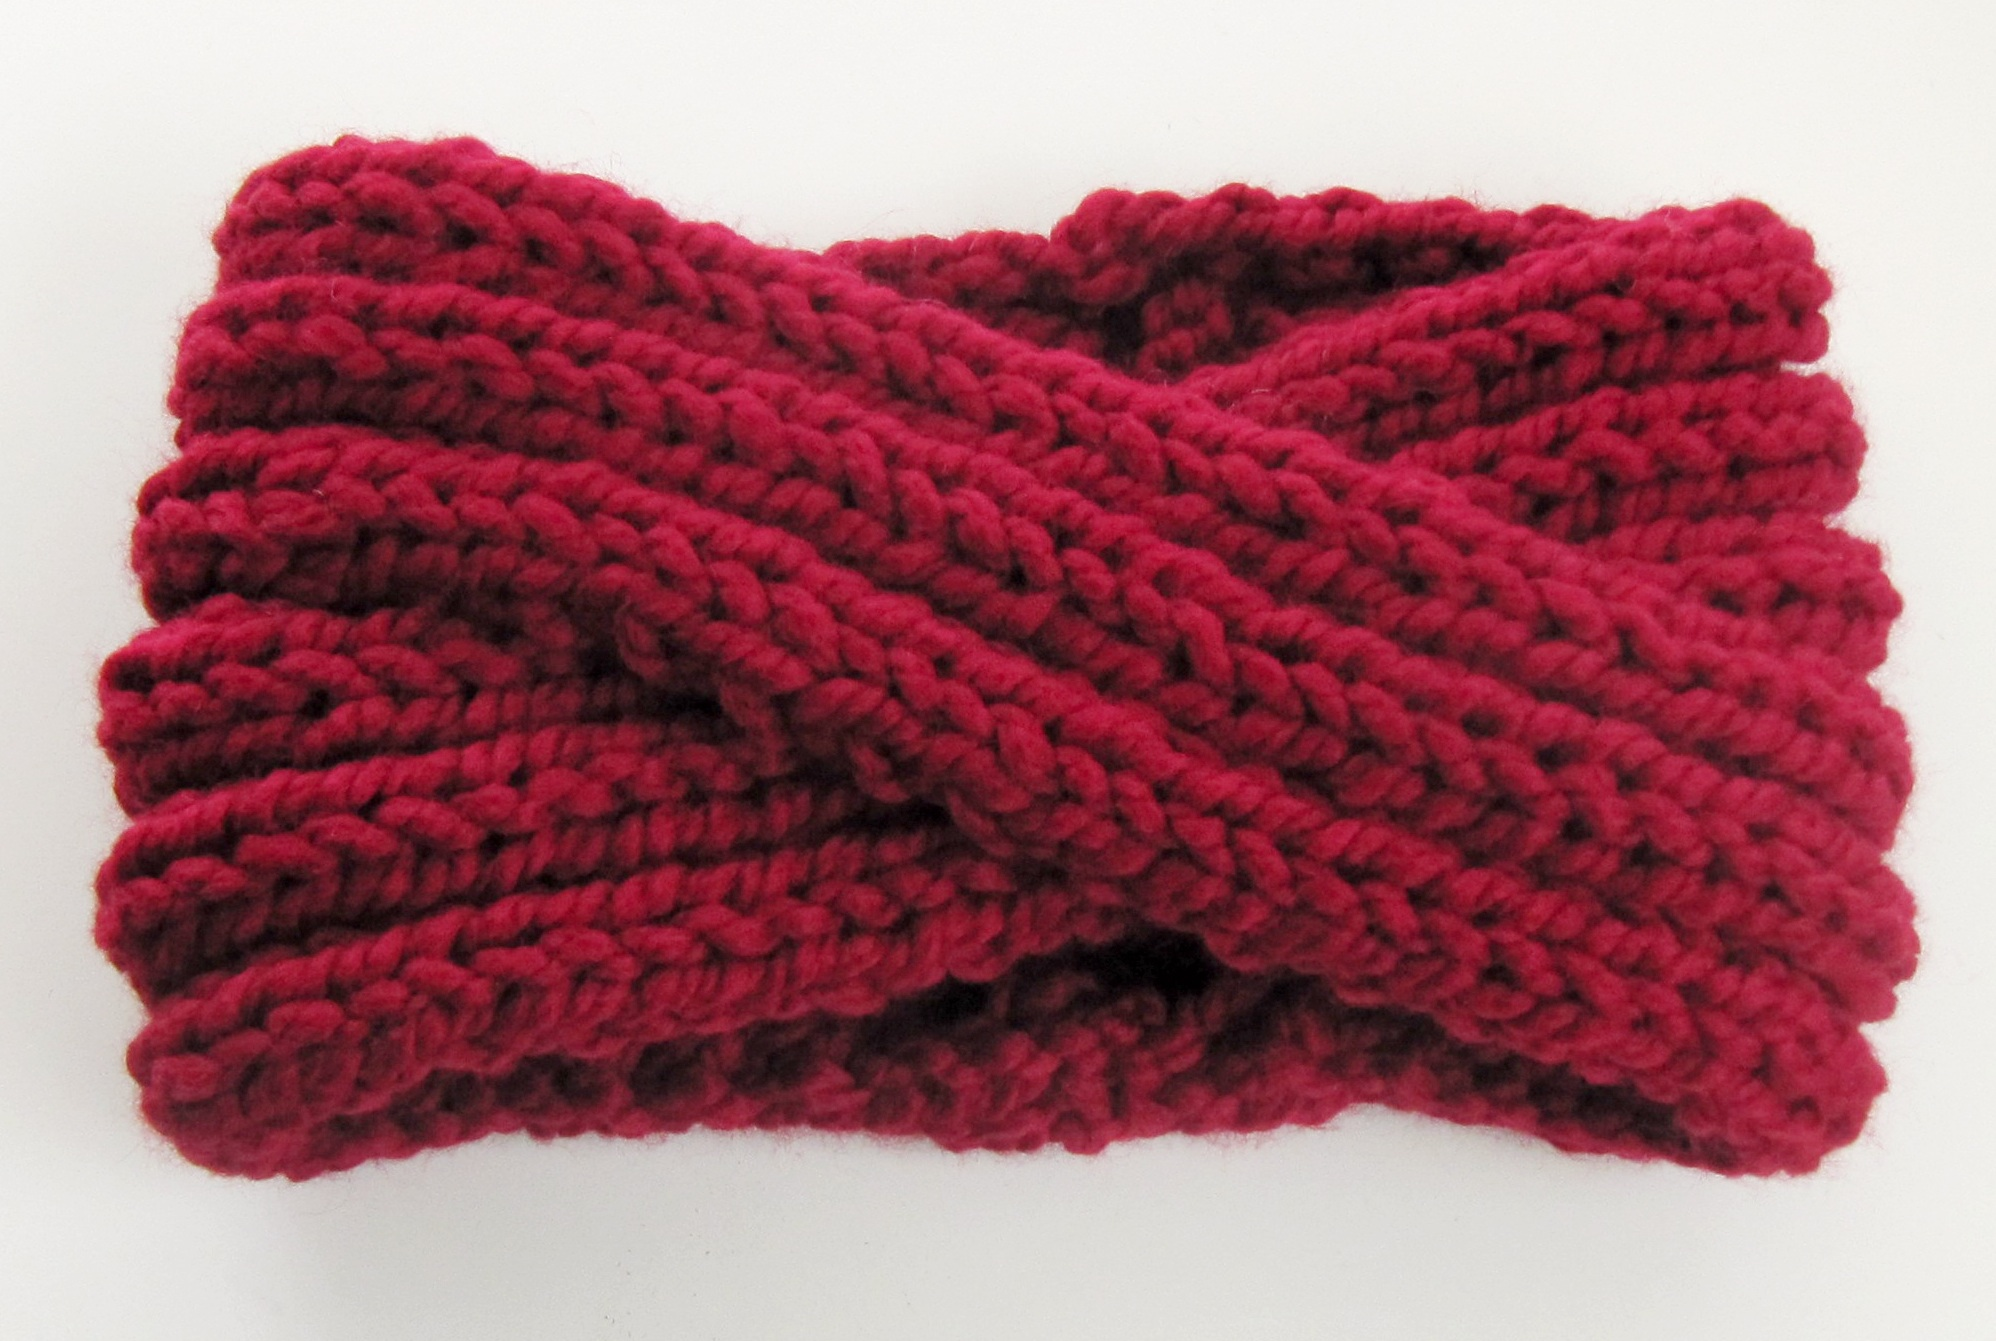 Headband Knitting Pattern : chunky knit turban headband ear warmer KNITS FOR LIFE